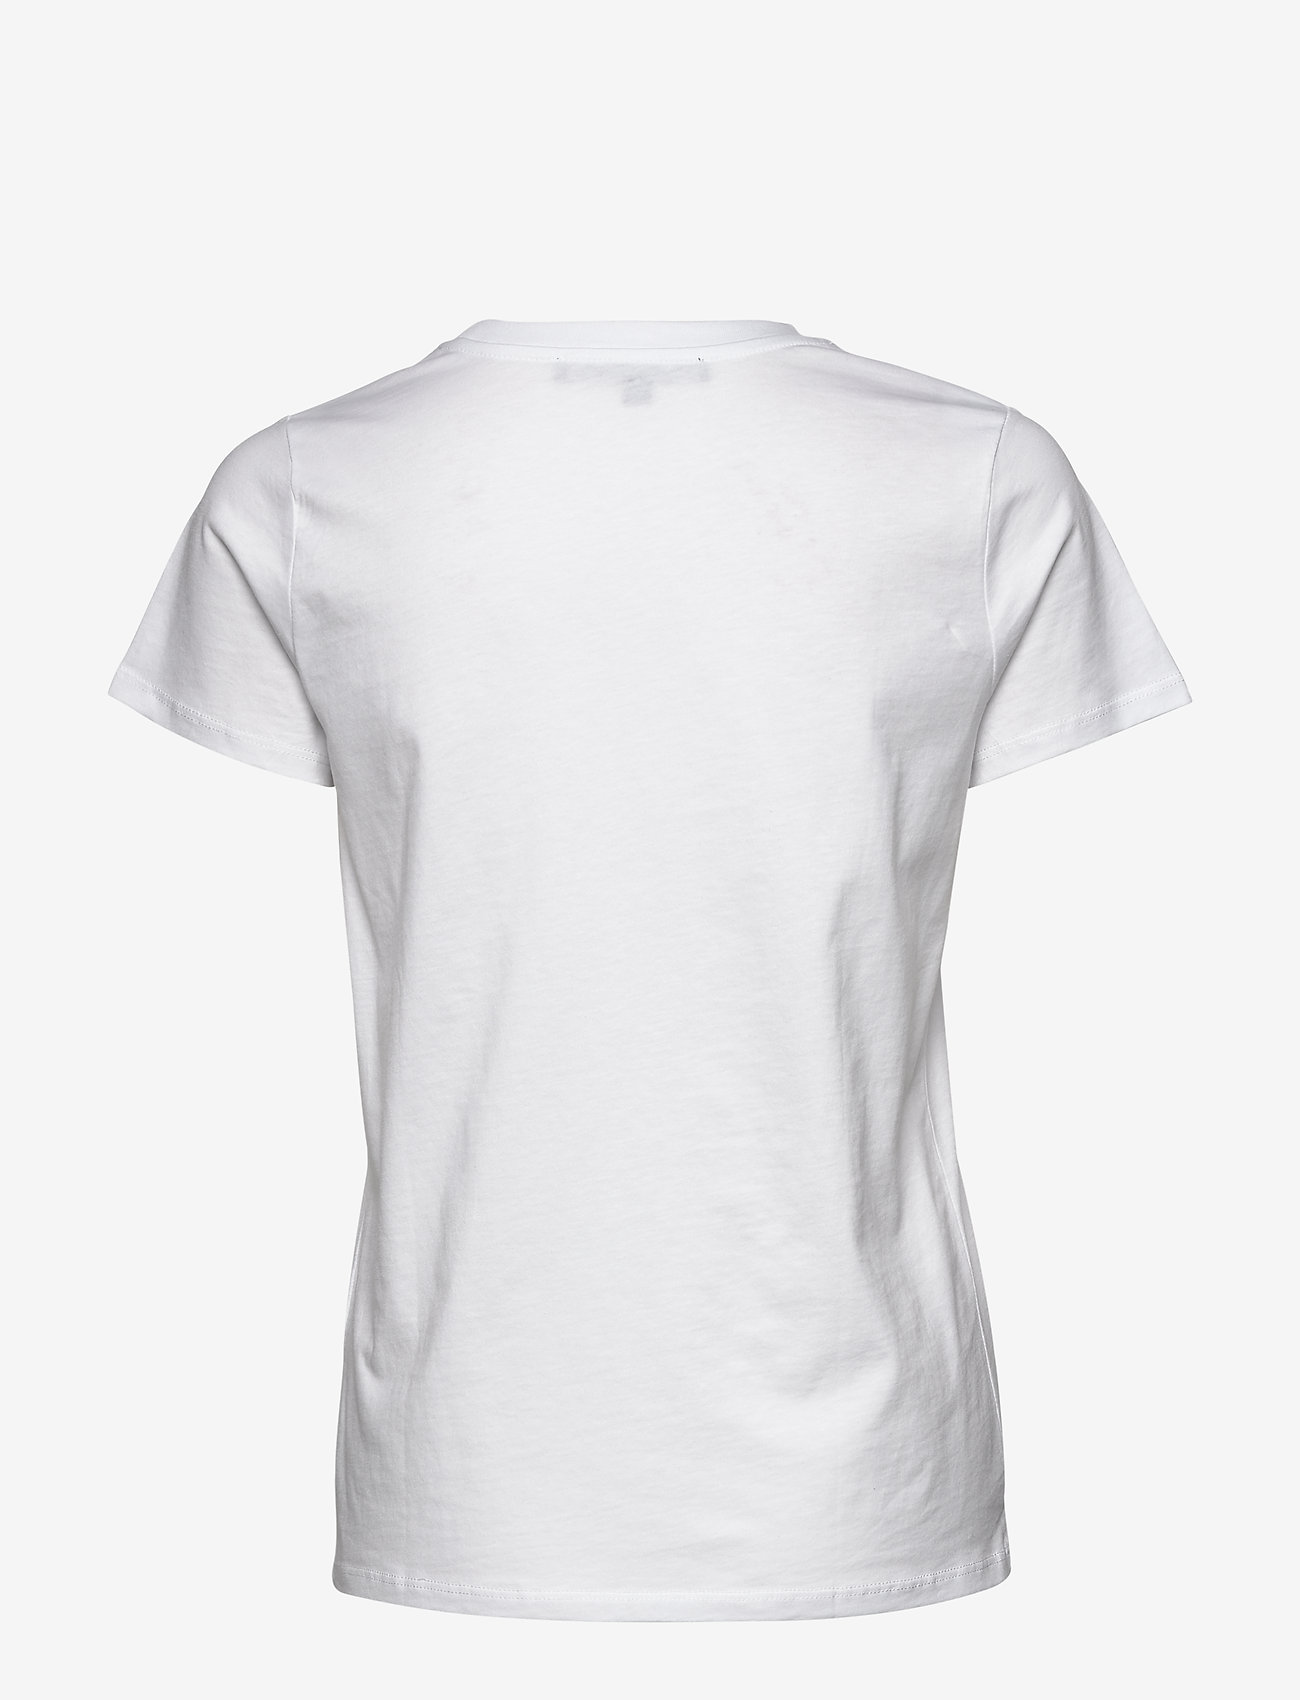 French Connection LE FRENCHIE SHORT SLEEVE TEE - T-shirts & Tops WHITE